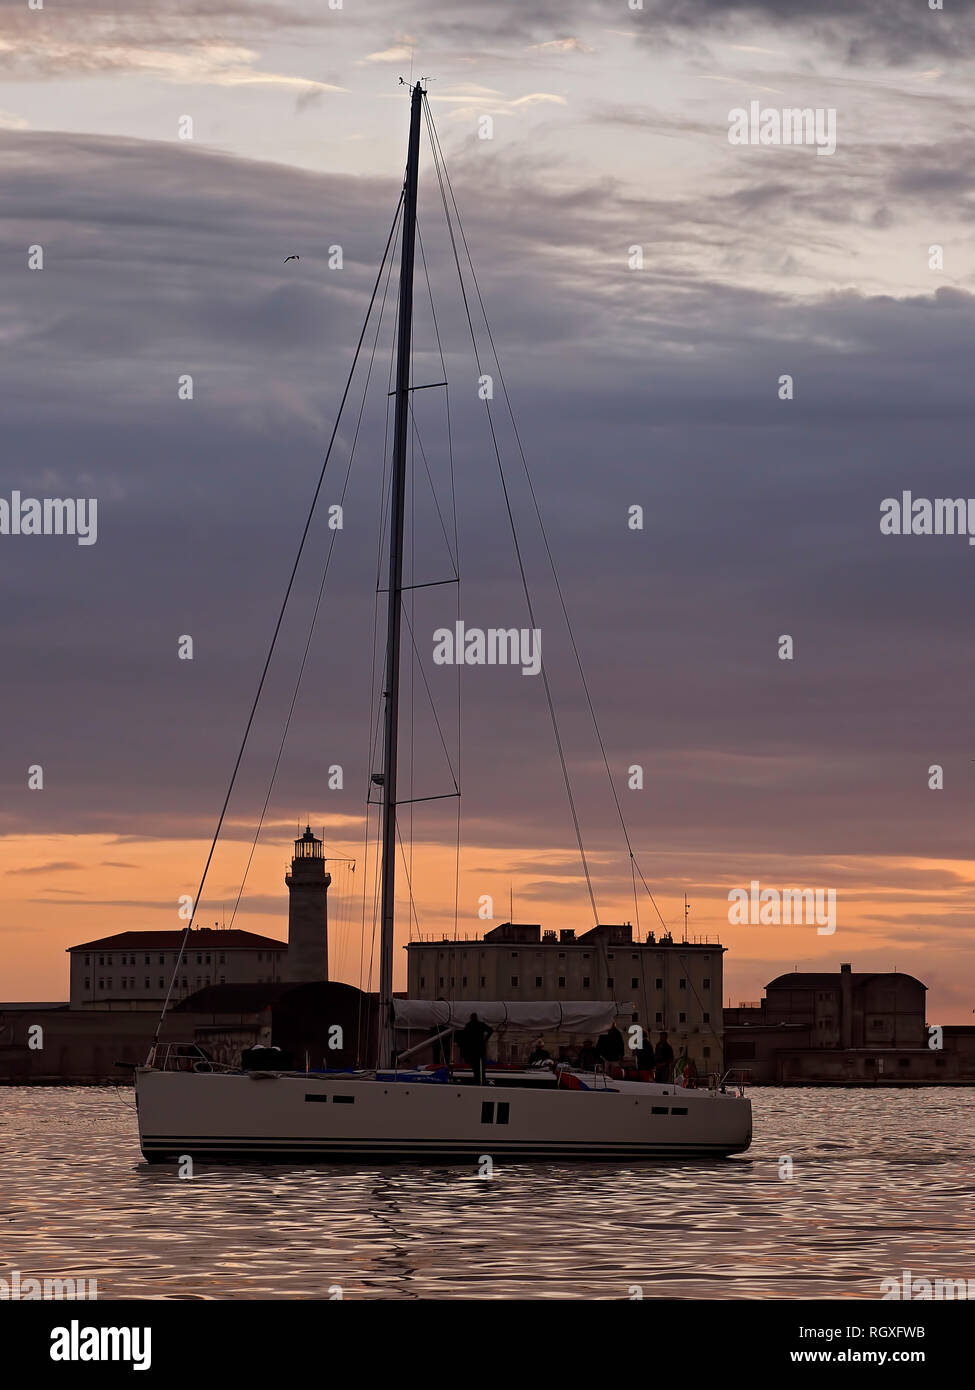 Trieste. Italy. Sailing boat and the Lantern. Stock Photo